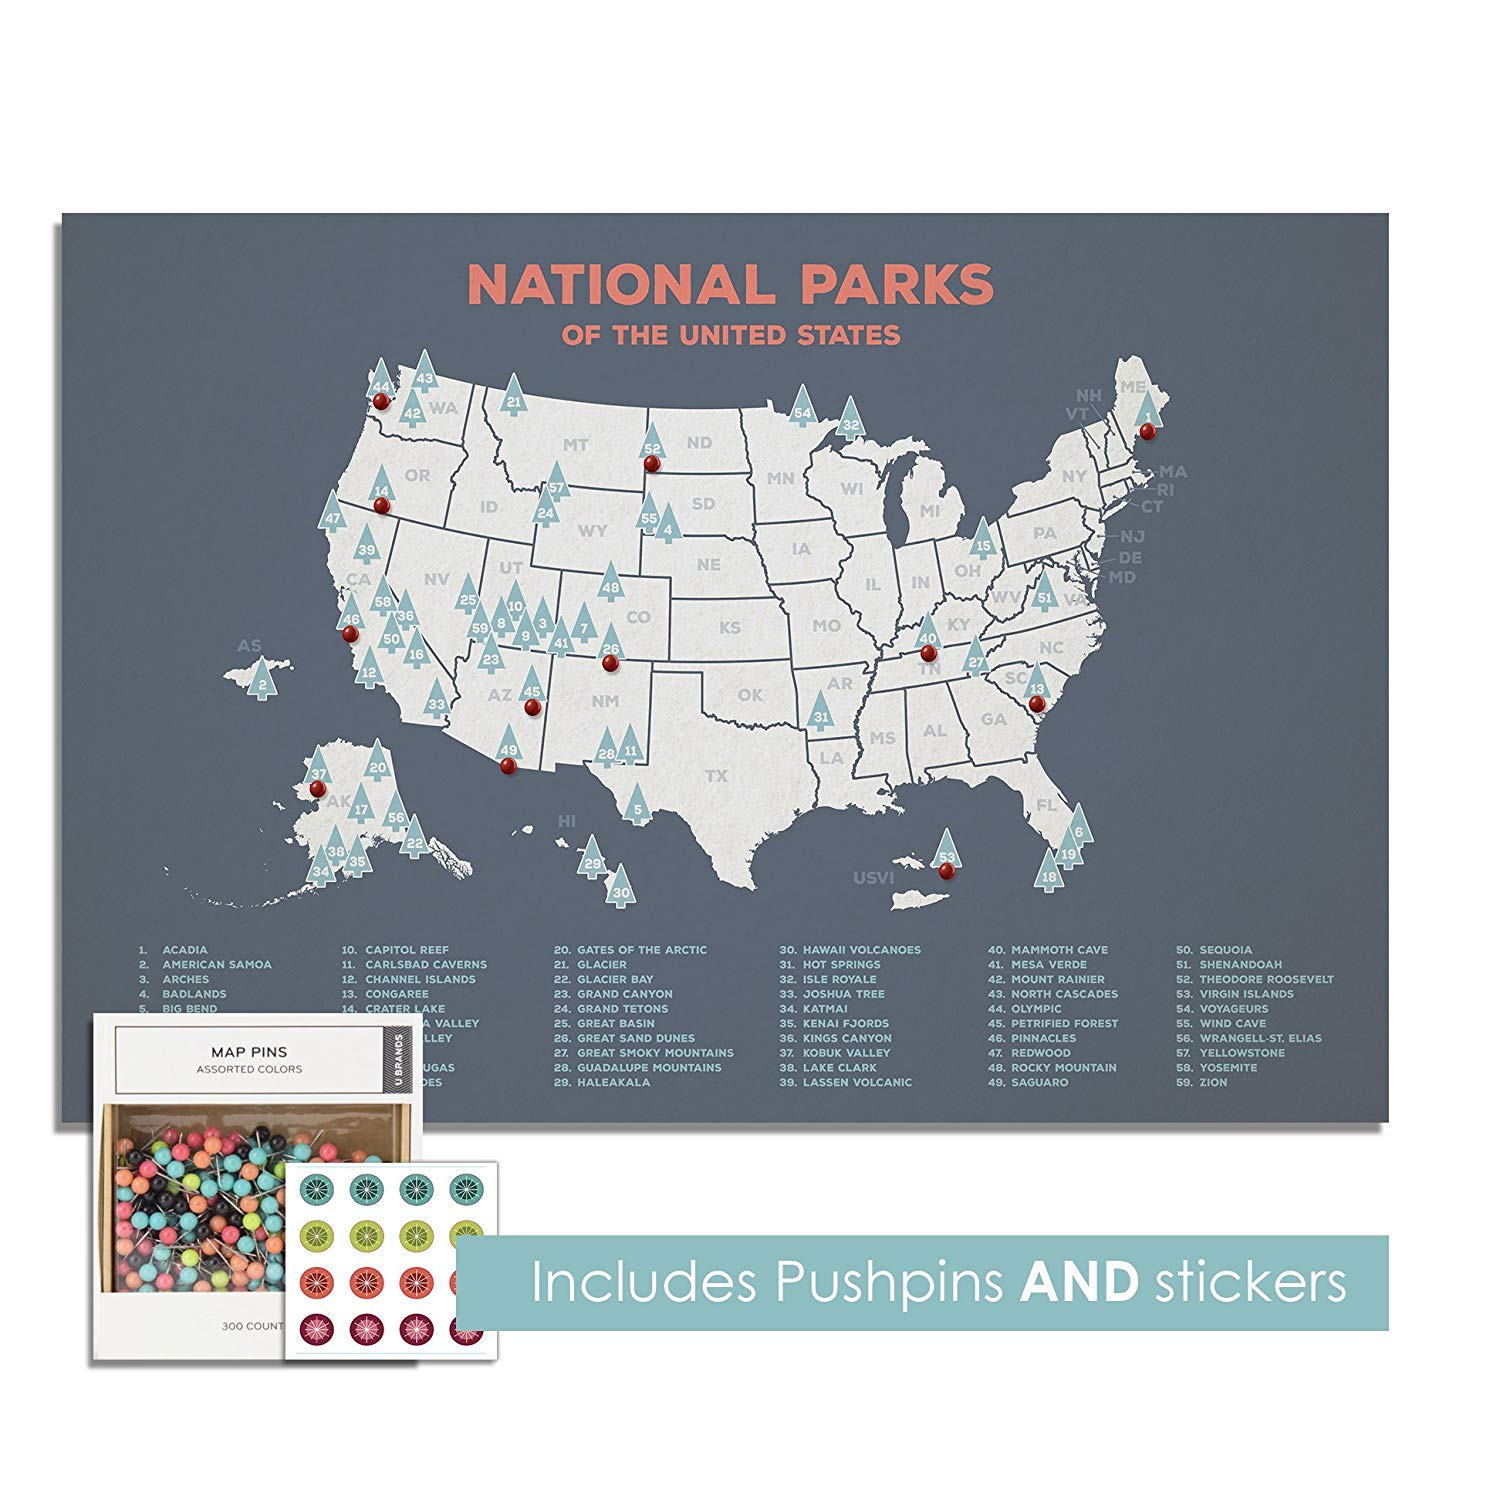 "Kindred Sol Collective Blue USA National Parks Push Pin Canvas Map - Personalize Mark Adventures Included Pins Stickers - Wall Decor Weddings, Anniversaries, Bedrooms Classrooms (24"" x 18"", Grey)"